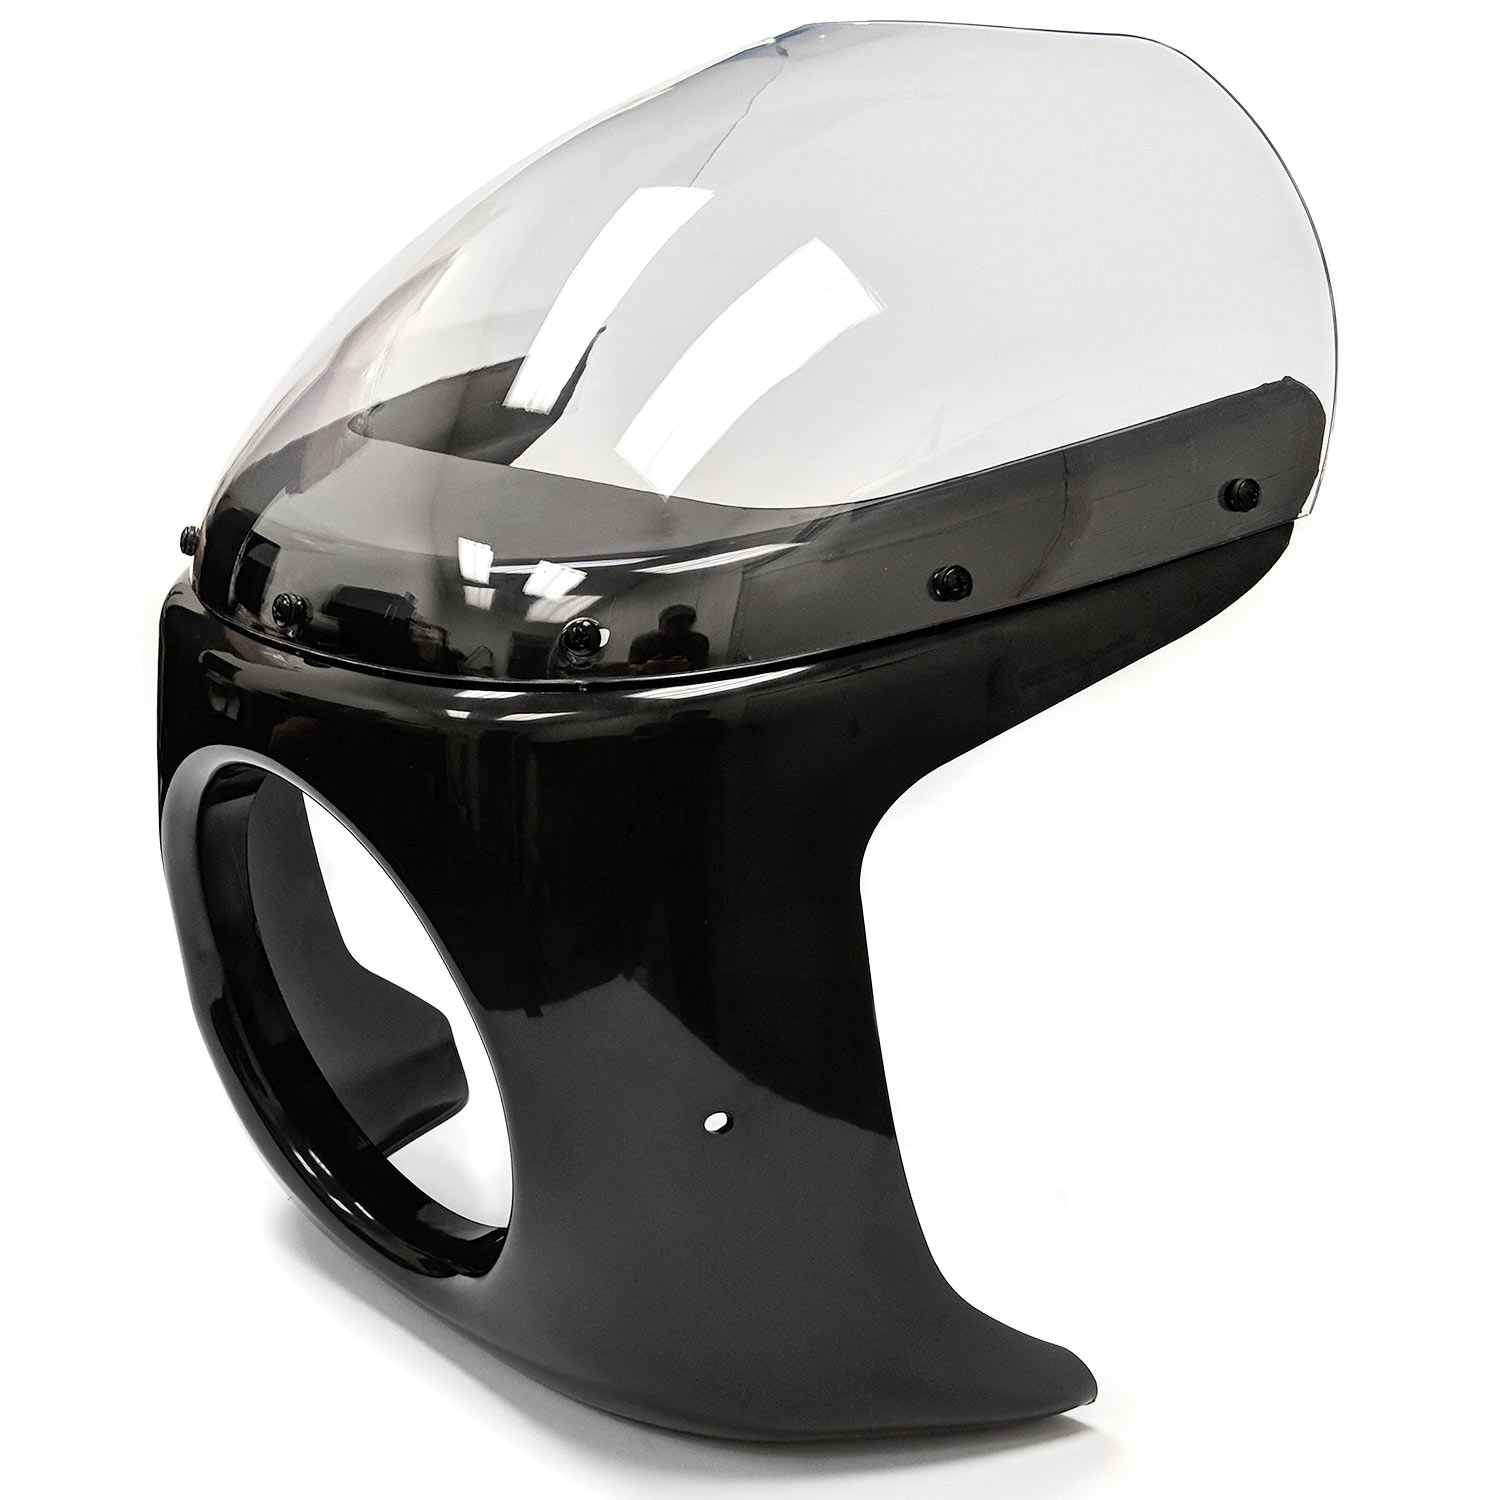 Krator Motorcycle 7 inch Headlight Fairing Screen Black & Clear for Kawsaki ZL 600 900 1000 Eliminator (Modification Maybe Required) - image 1 of 8